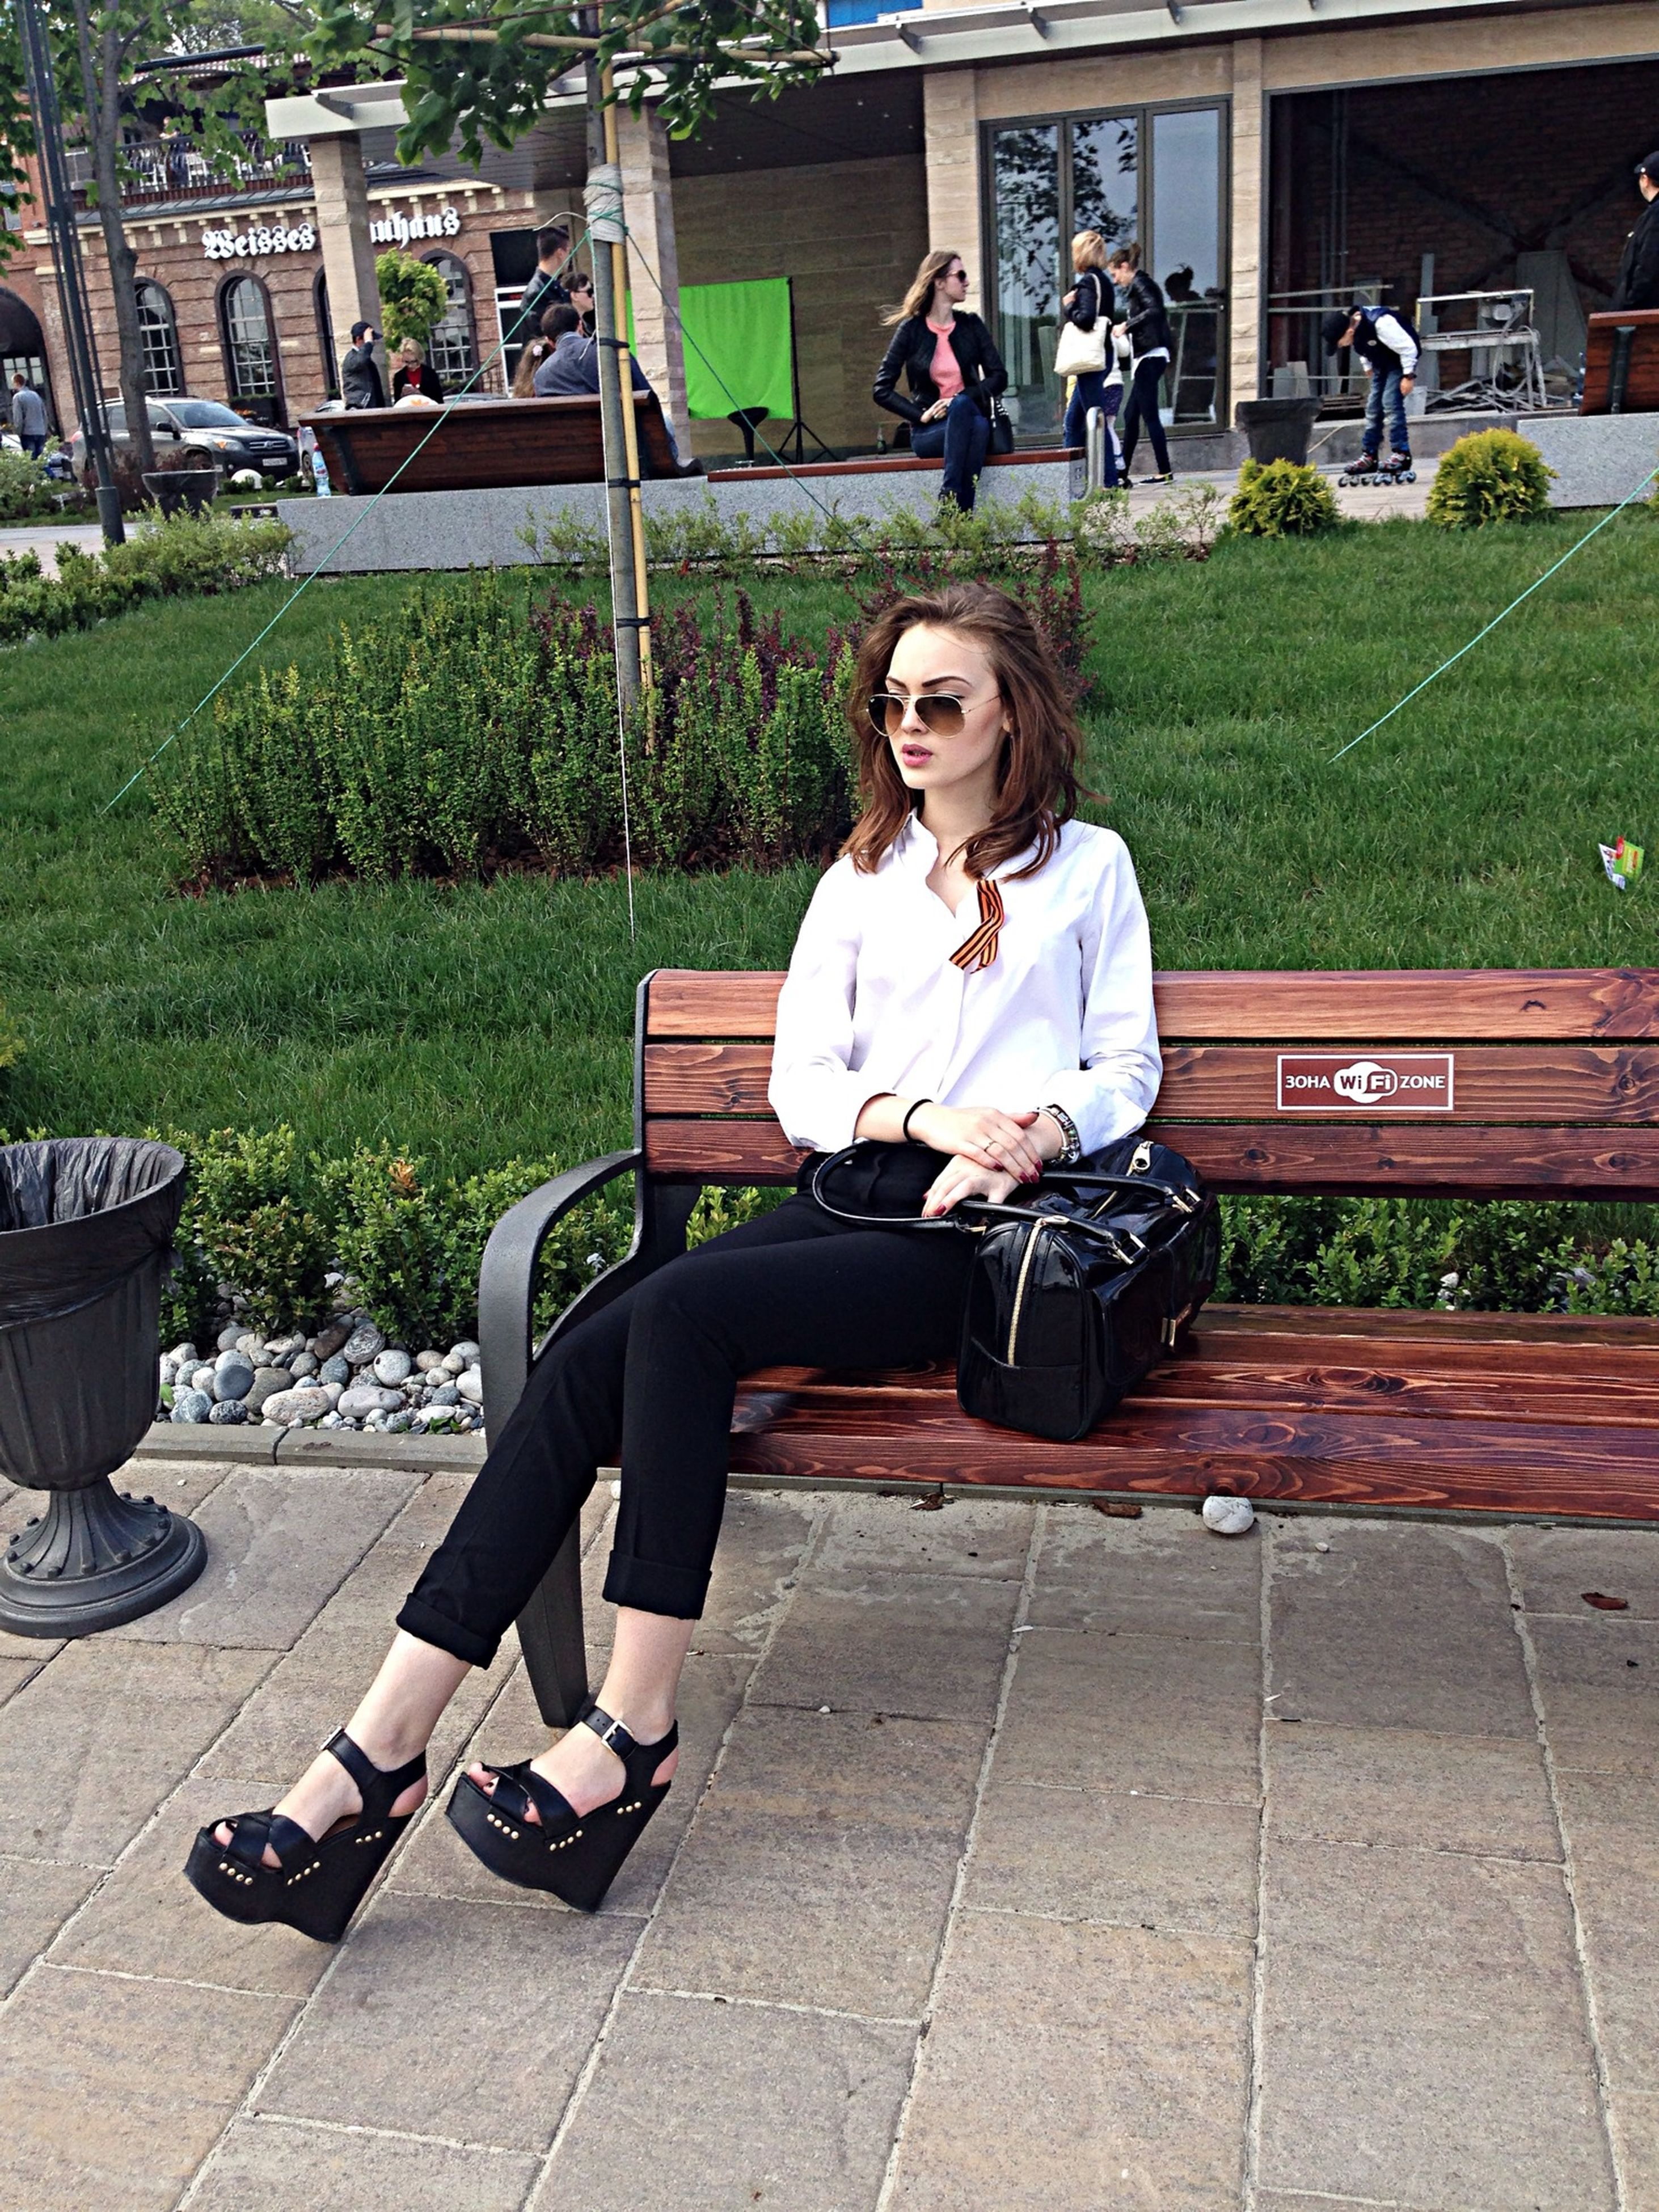 sitting, lifestyles, full length, casual clothing, leisure activity, relaxation, person, young adult, park - man made space, bench, young women, chair, grass, outdoors, day, park, childhood, building exterior